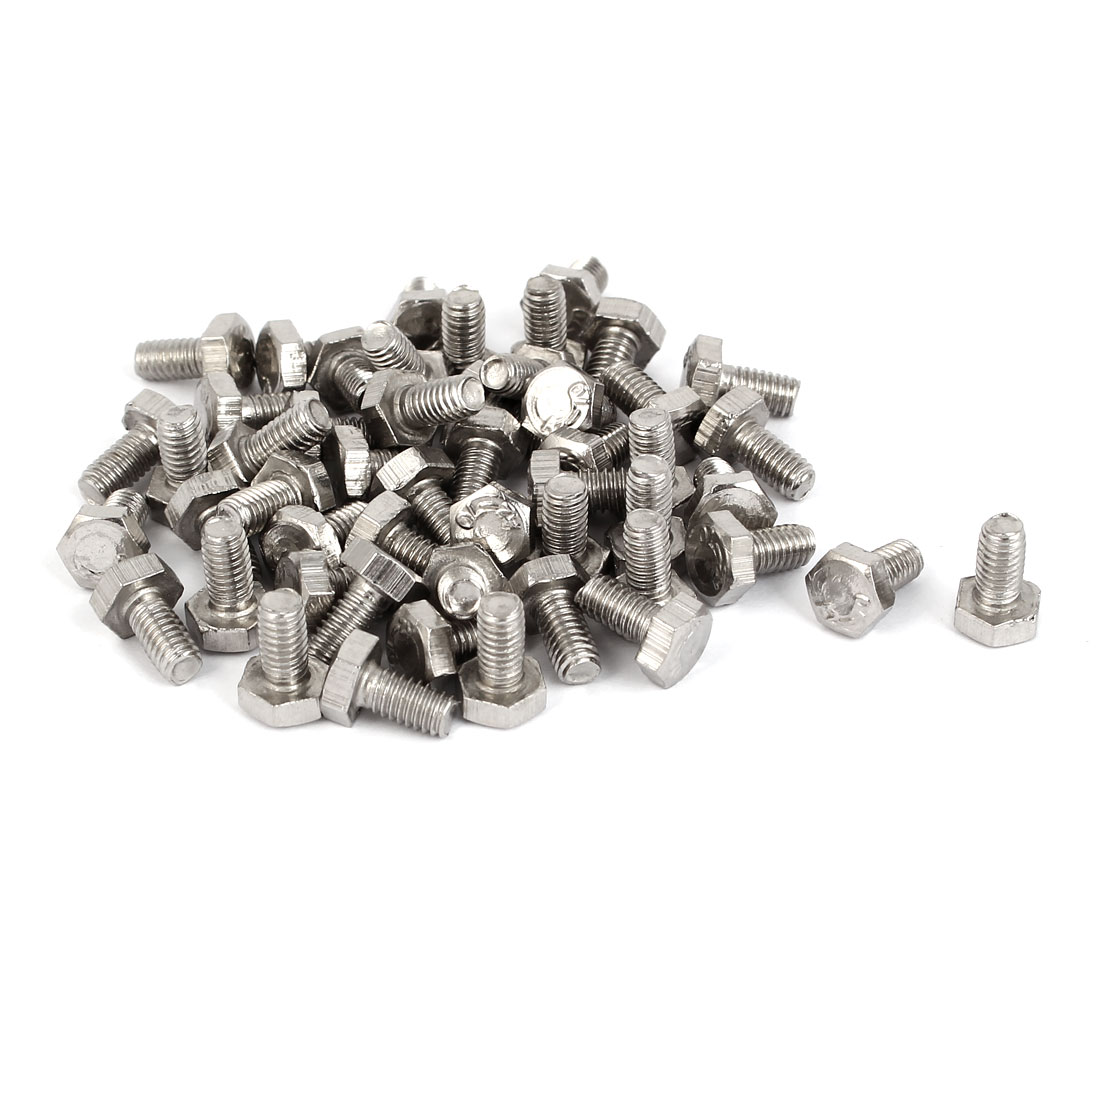 M4 x 8mm Stainless Steel Fully Thread External Hex Drive Bolts DIN 933 50PCS